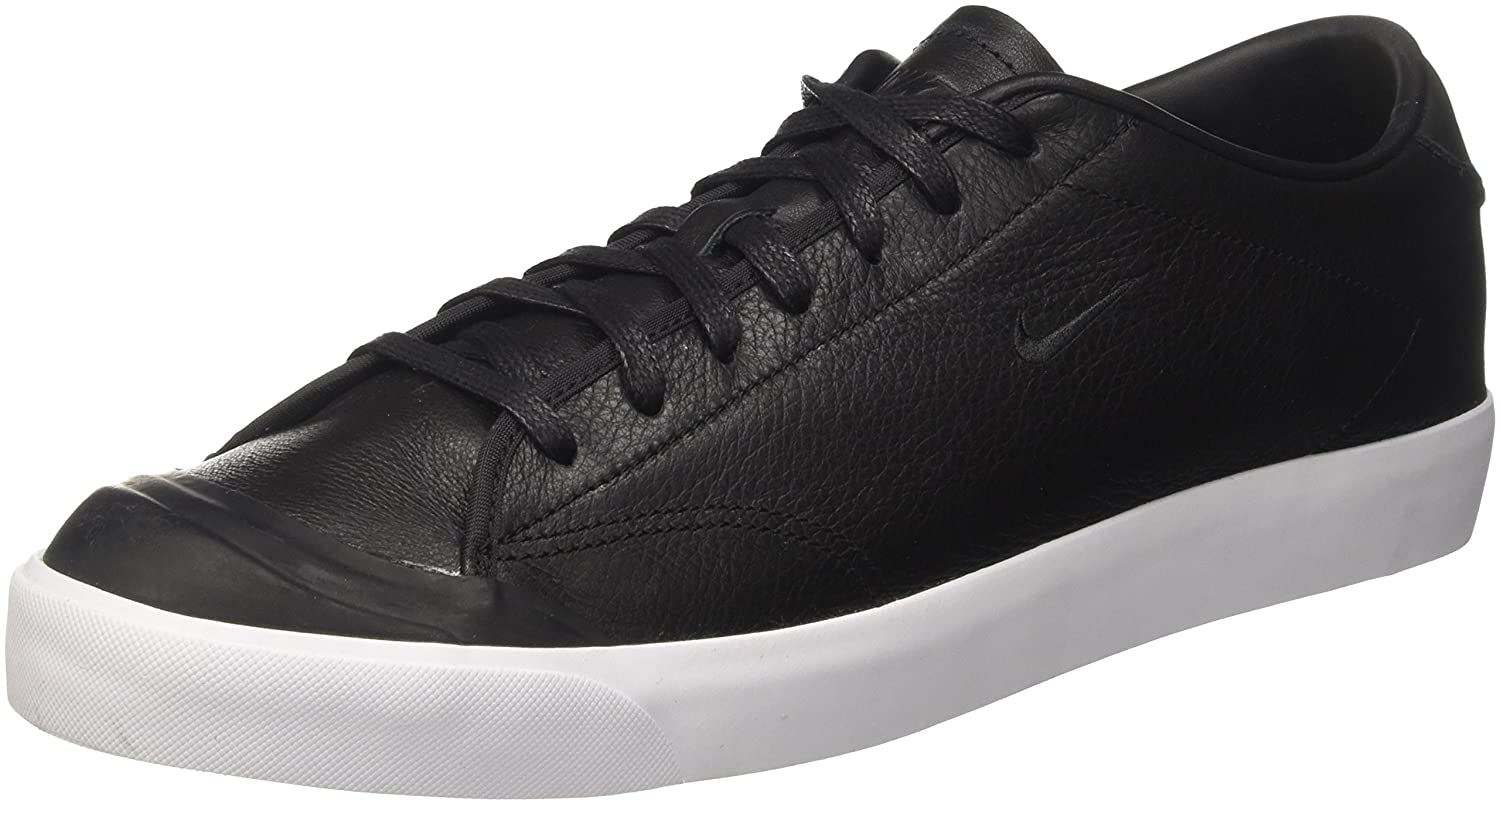 Nike Herren All Court 2 Low Leather Sneaker  385 EU|Schwarz (Black-white)